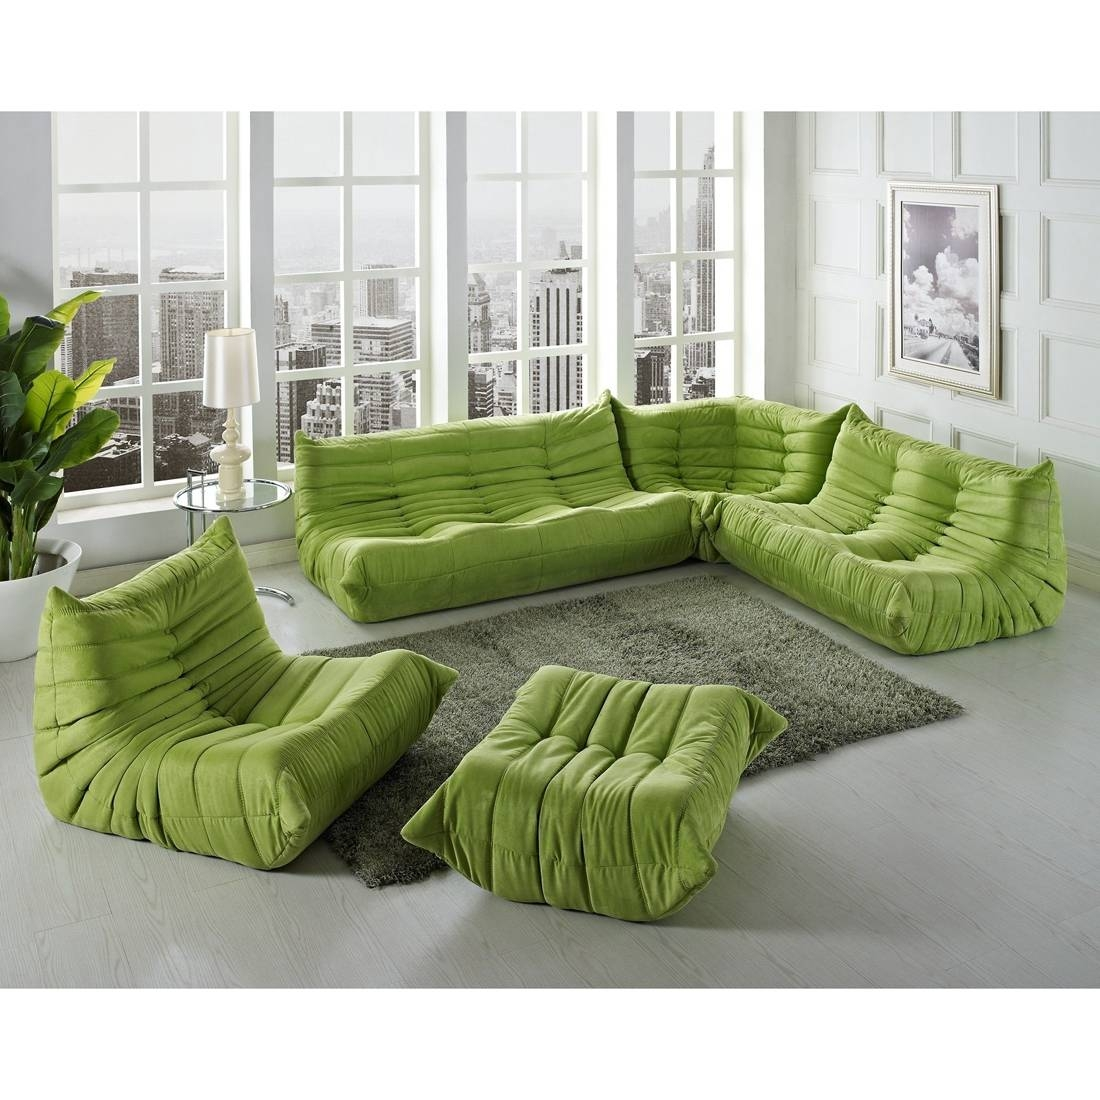 Sofa: Low Profile Sofa | Home Interior Design throughout Low Height Sofas (Image 12 of 15)